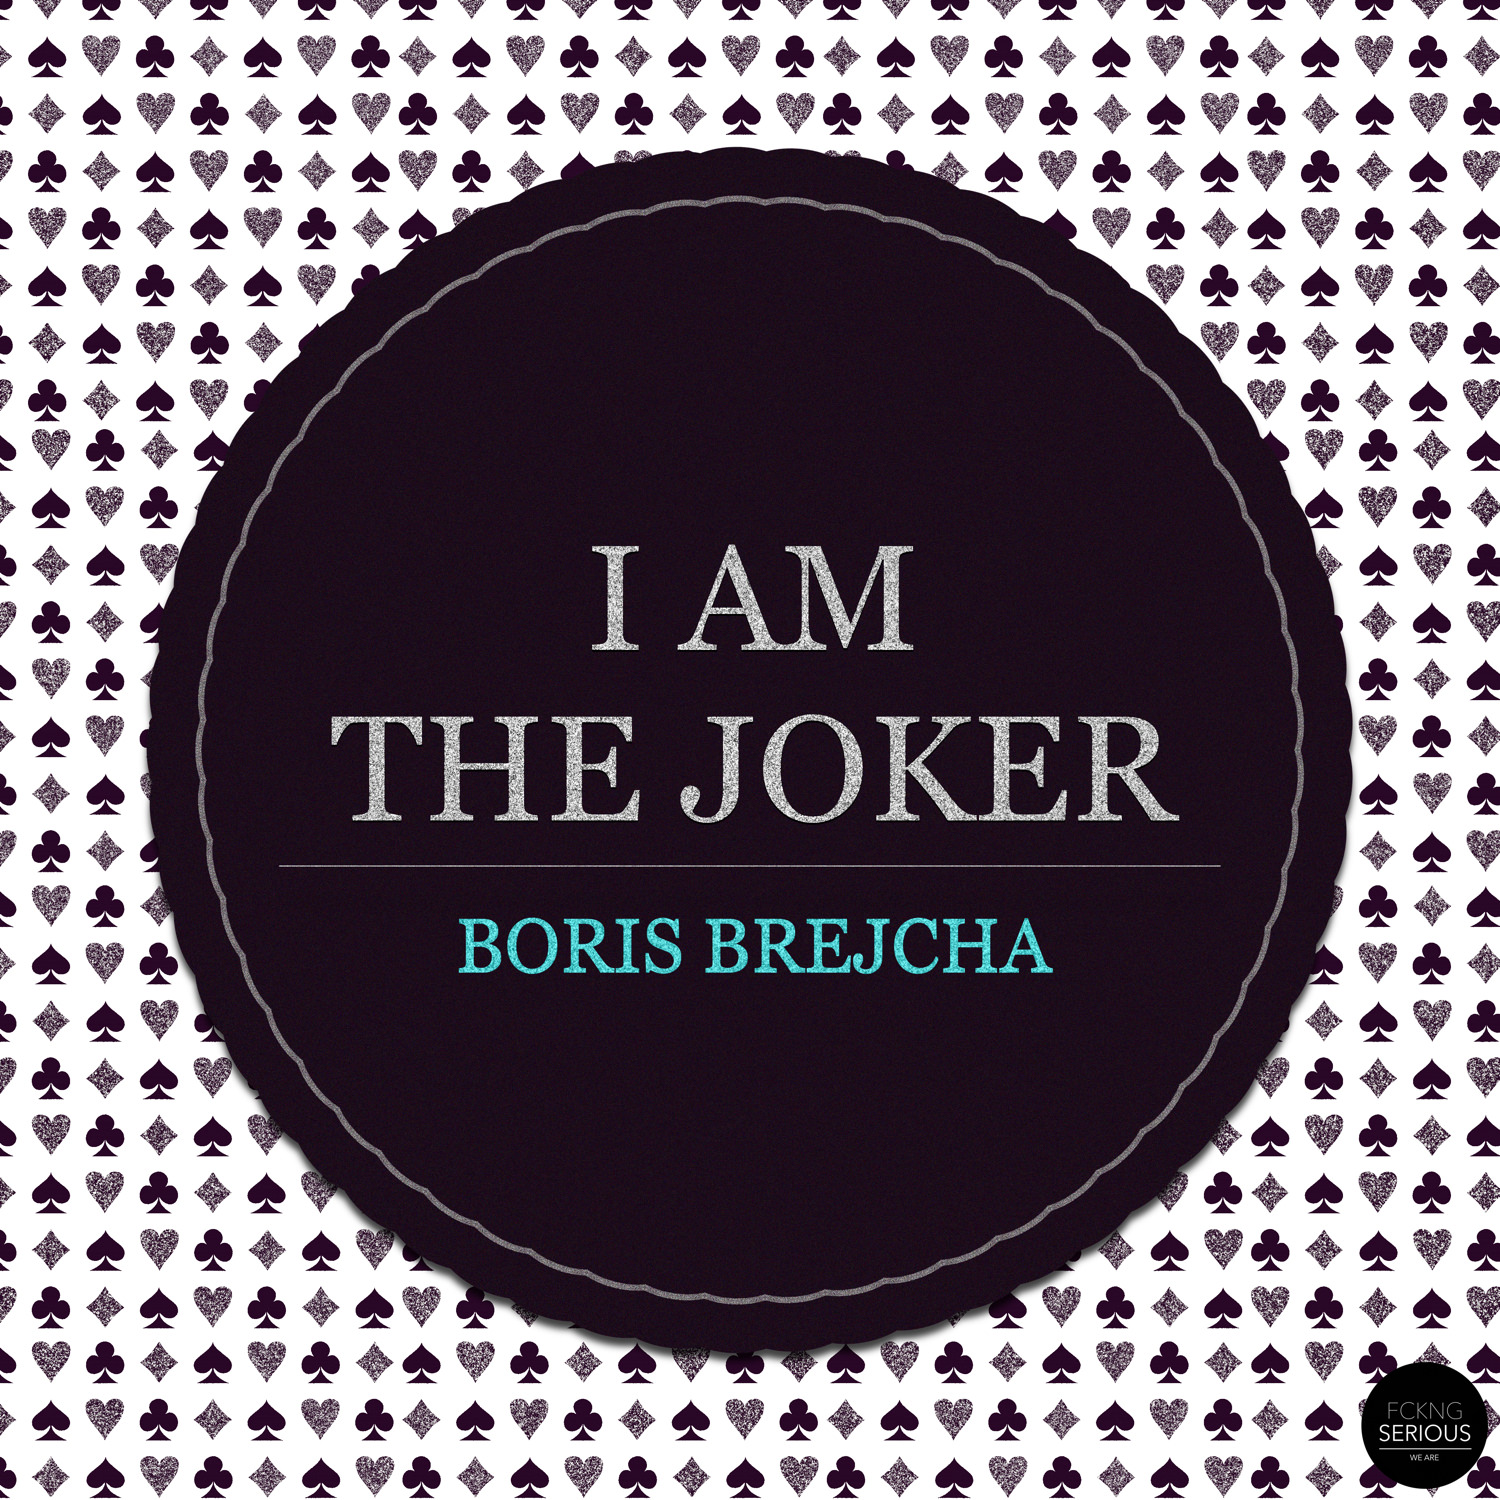 I AM THE JOKER - BORIS BREJCHABoris Brejcha is coming up with his first single EP on his own label. Smashing down the dancefloor with